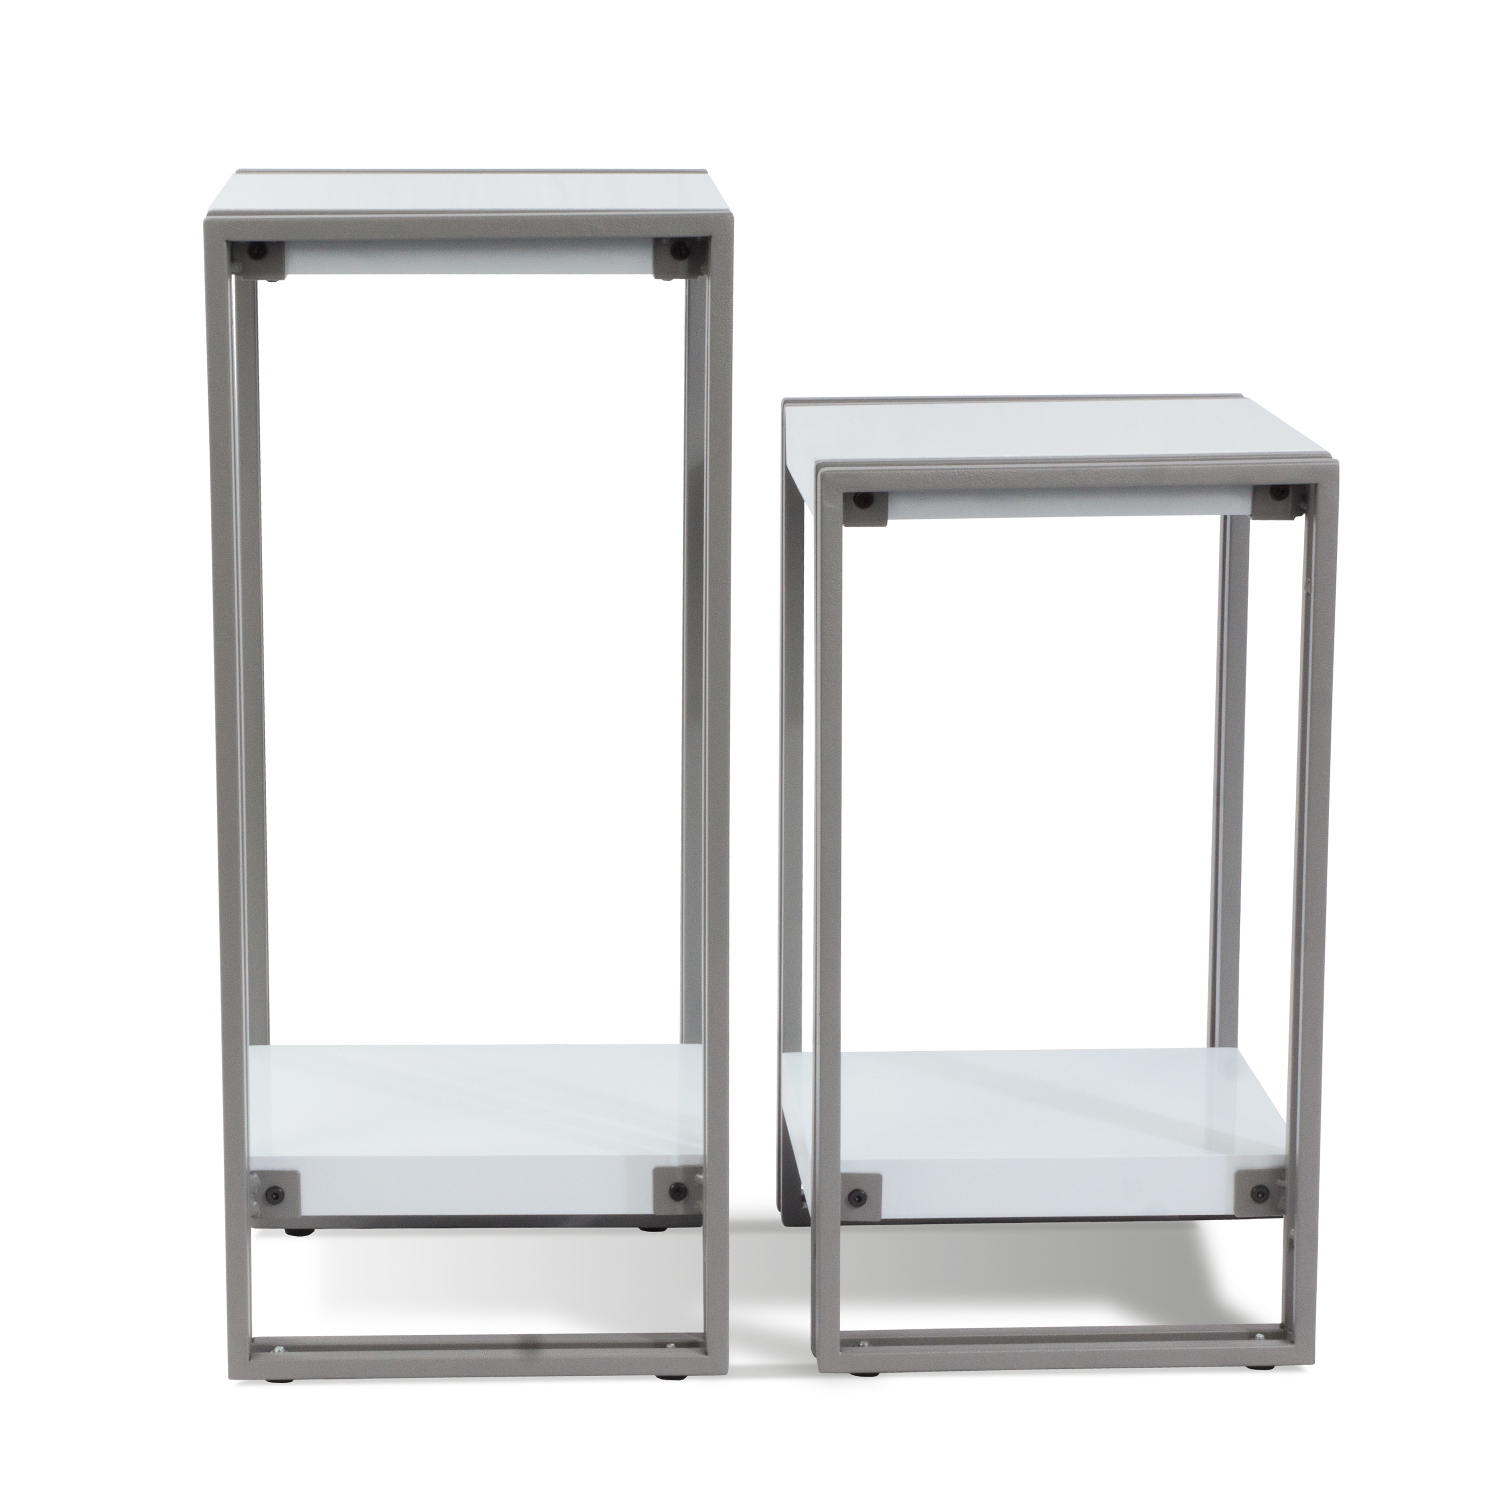 side tables with shelf modern large small accent table white top black frame silver lamps for bedroom decorative chests cabinets and chairs hairpin leg chair italian coffee chalk